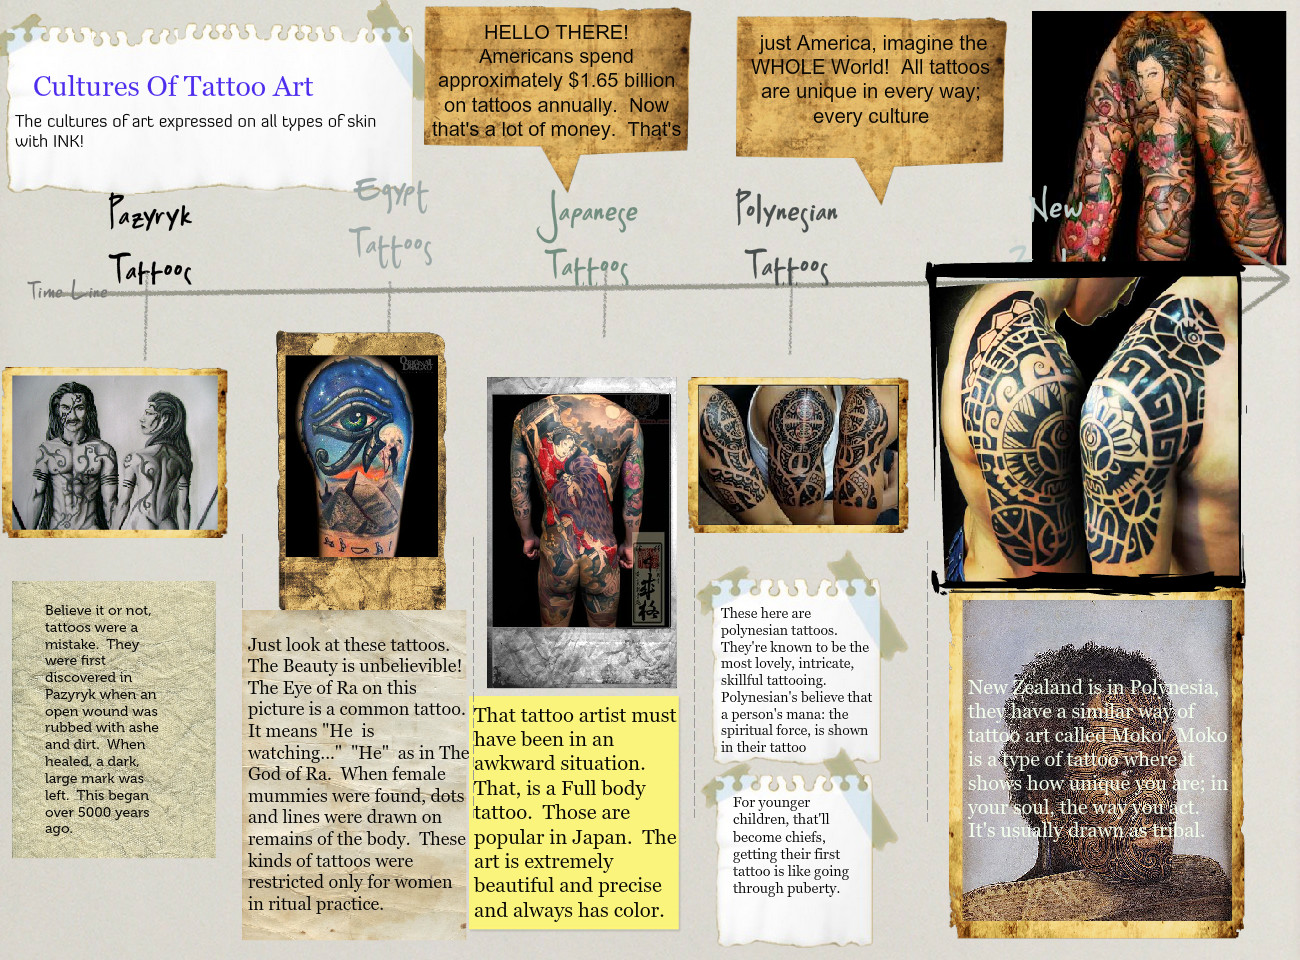 Cultures of Tattoos